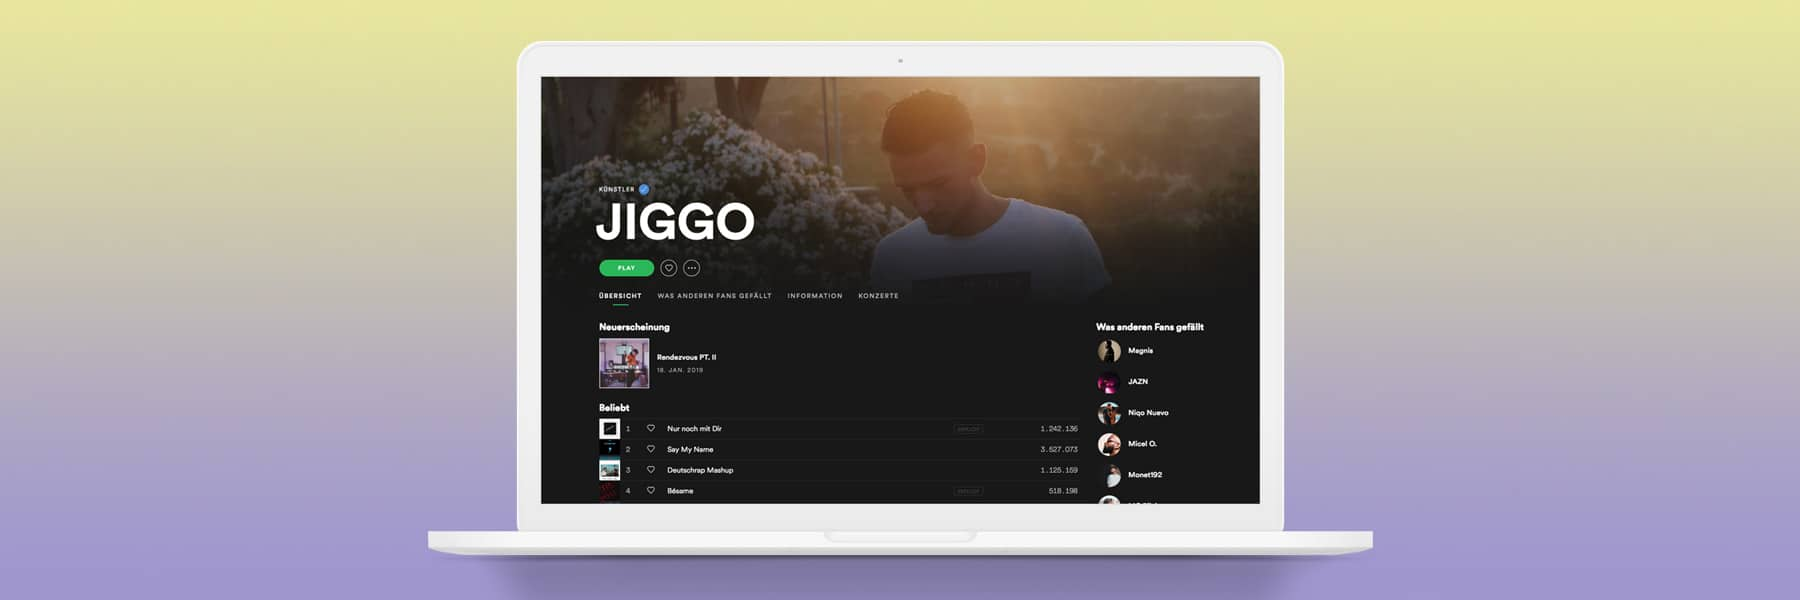 Falsches Spotify-Profil